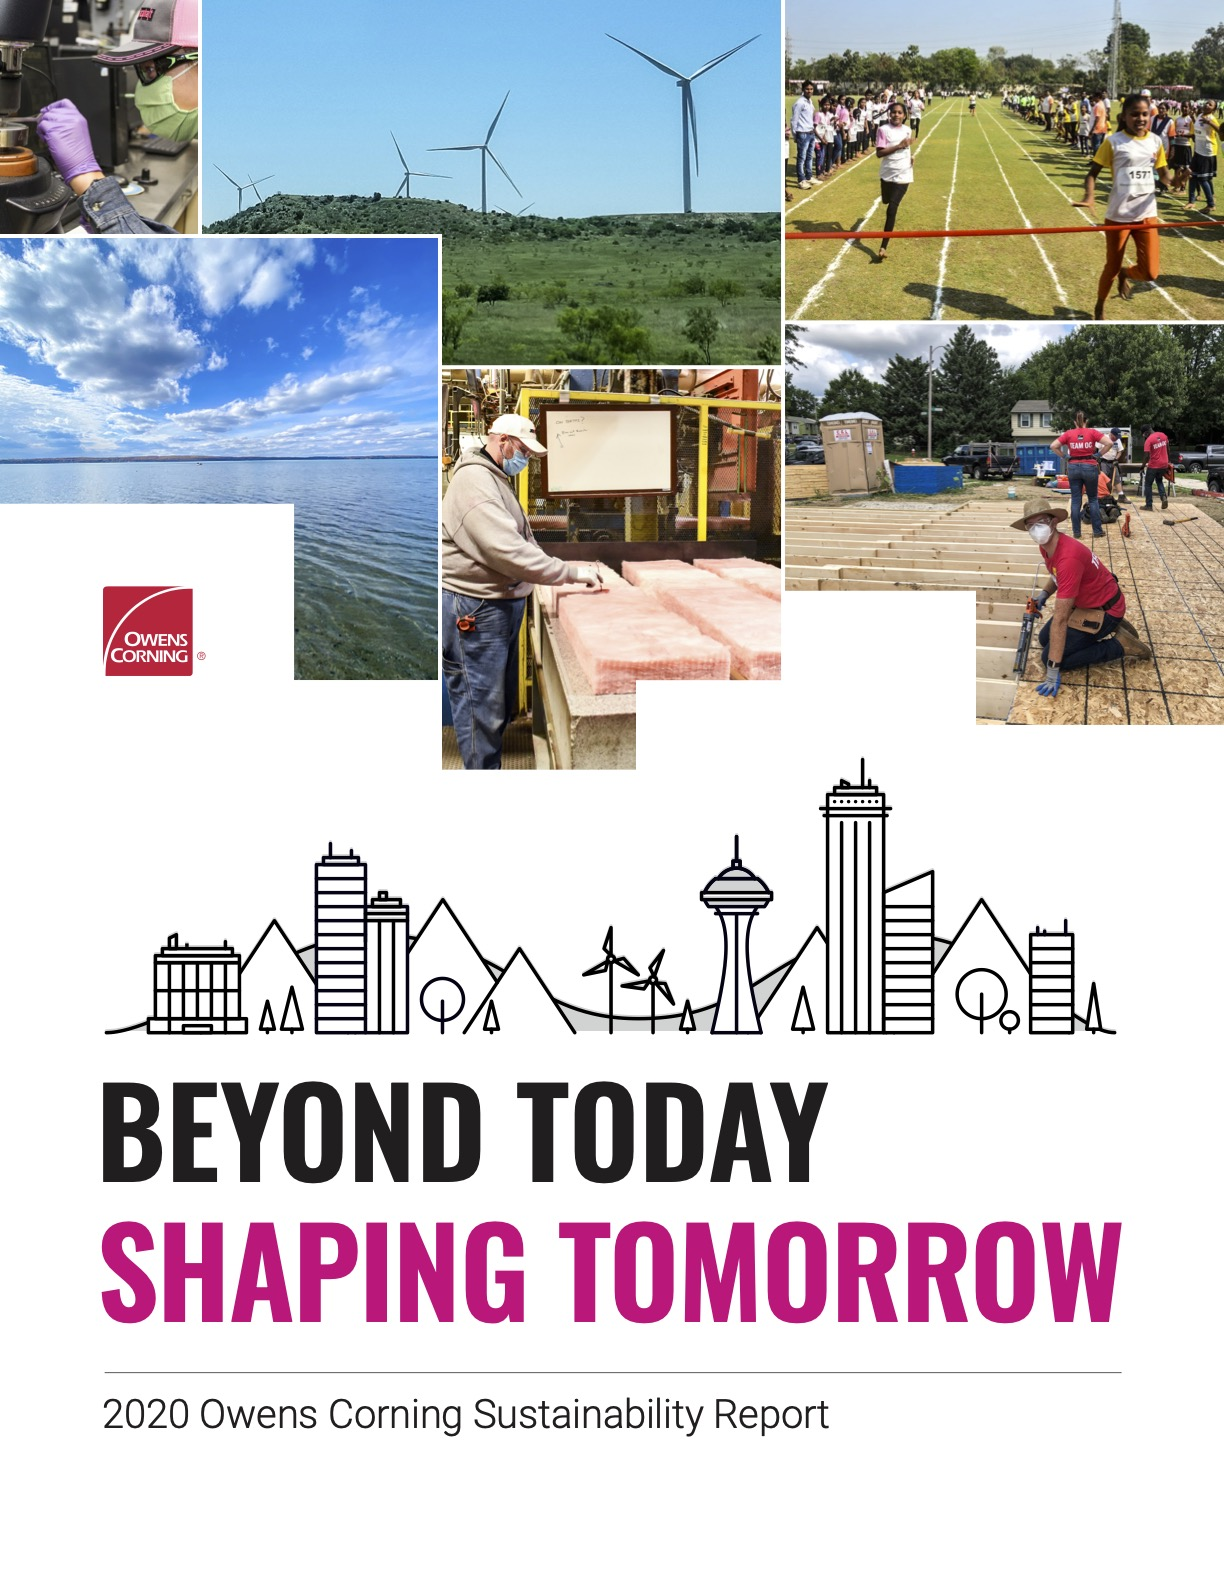 Owens Corning 2020 Sustainability Report Cover